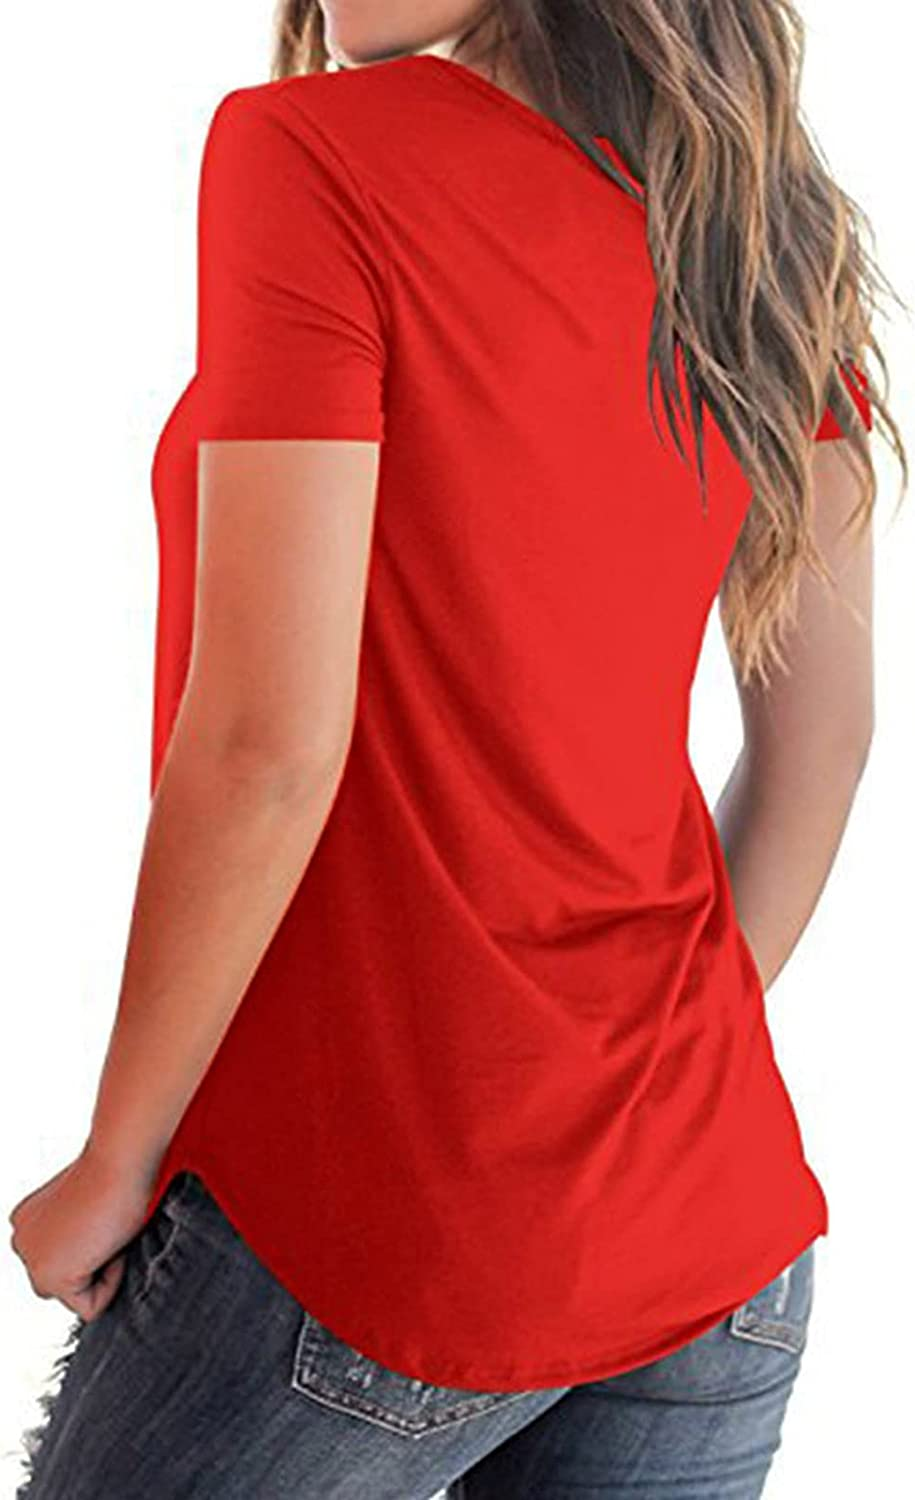 Women's Shirts Cross Casual Tank Tops Basic Blouse Loose Cute Printed Running Sports Athletic T Shirts